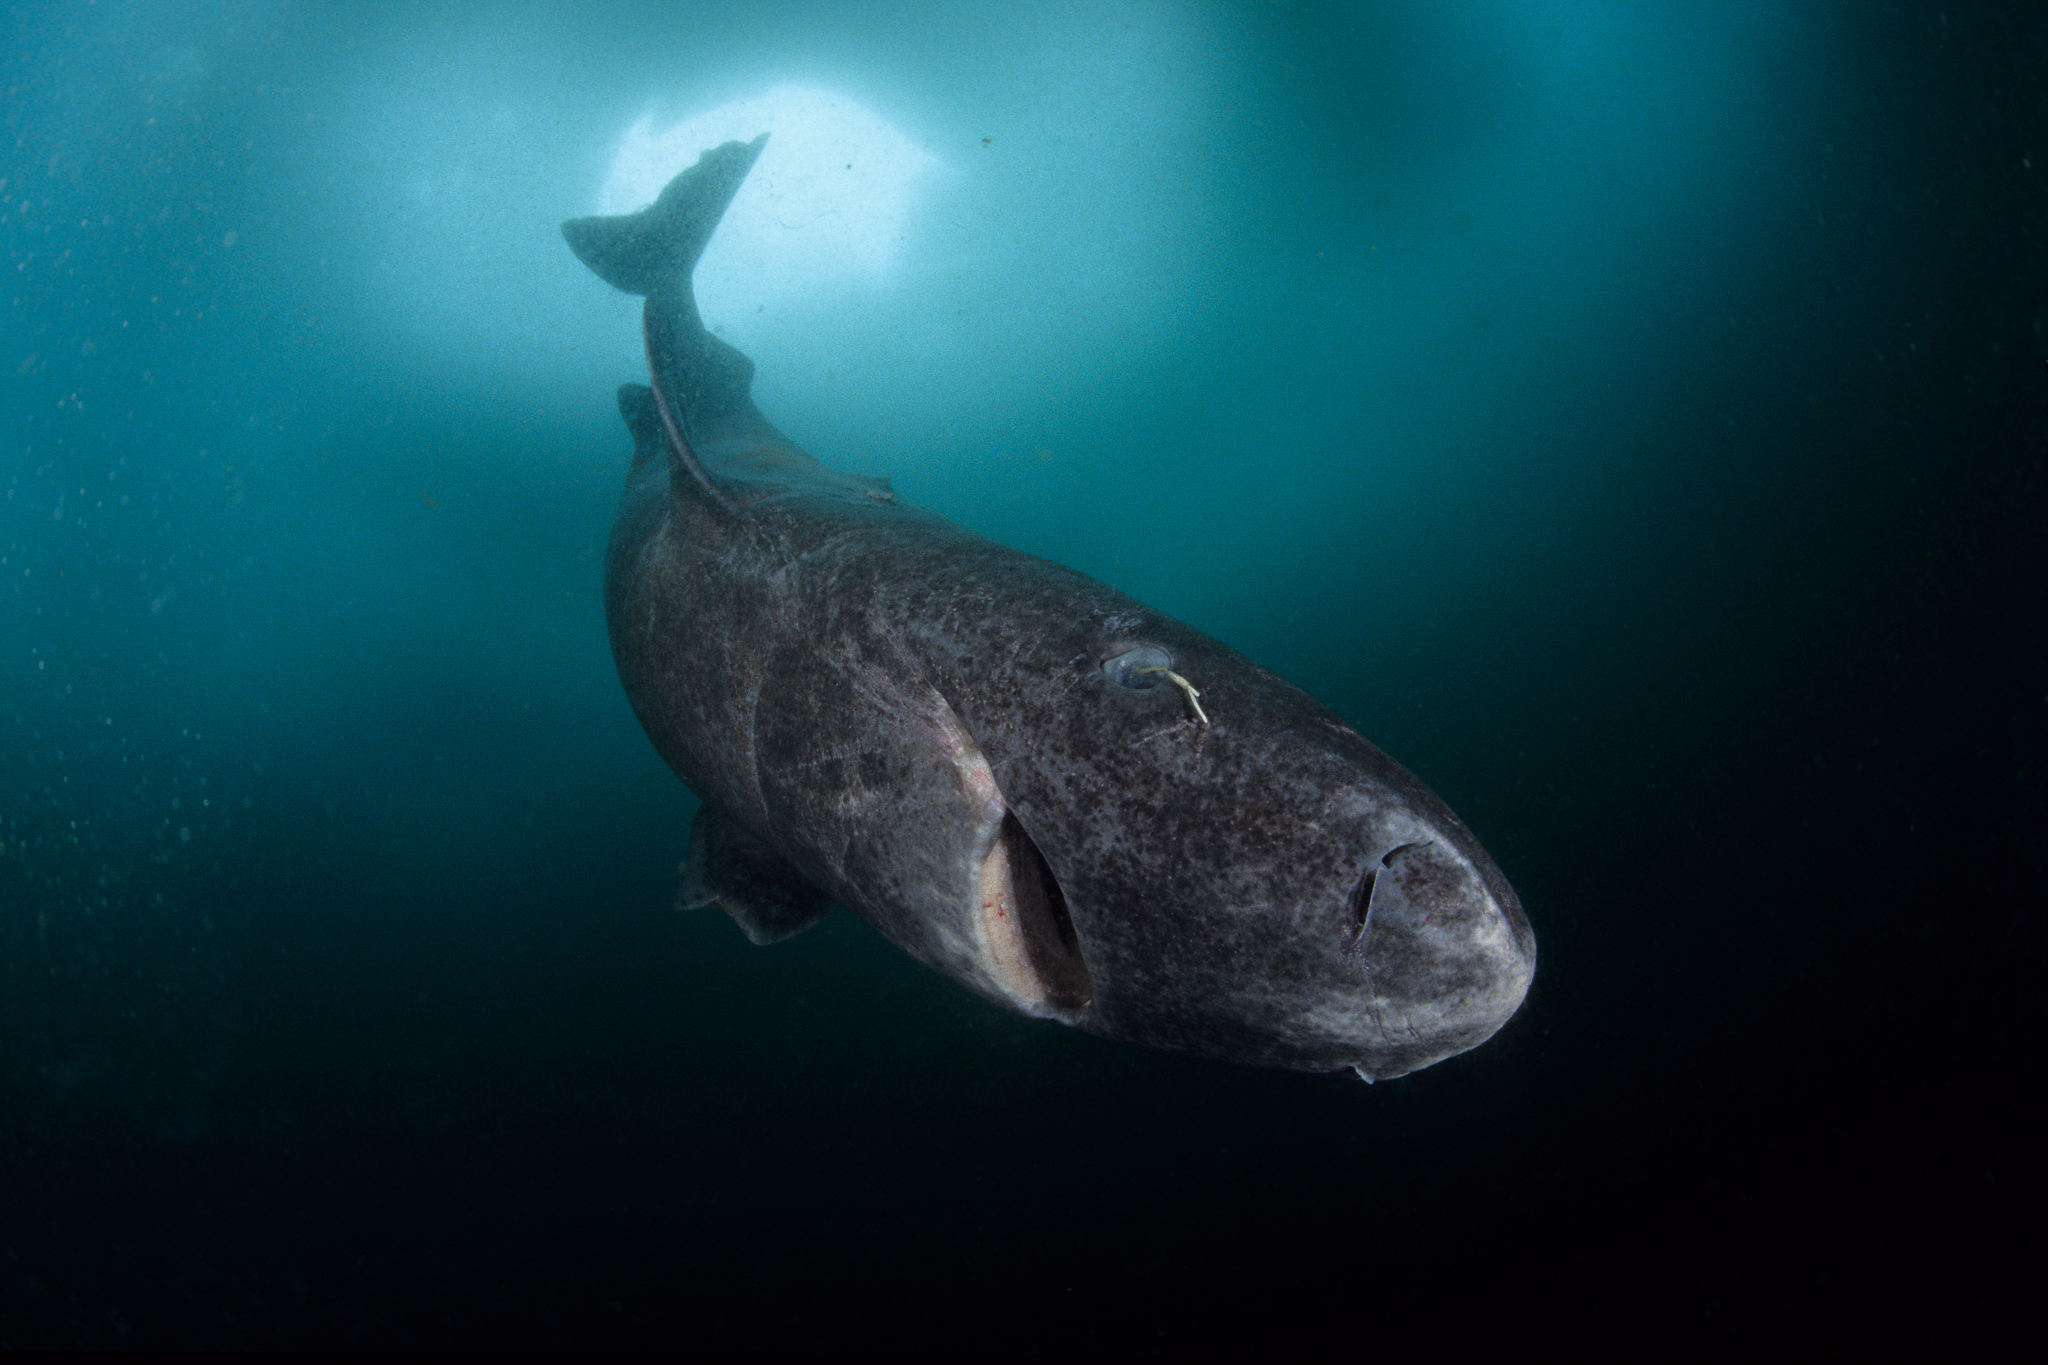 Greenland sharks (Somniosus microcephalus) have been implicated in corkscrew seal deaths off the coast of Nova Scotia. This individual was photographed in Lancaster Sound, Nunavut, northern Baffin Island, Canada. Photo by Franco Banfi.